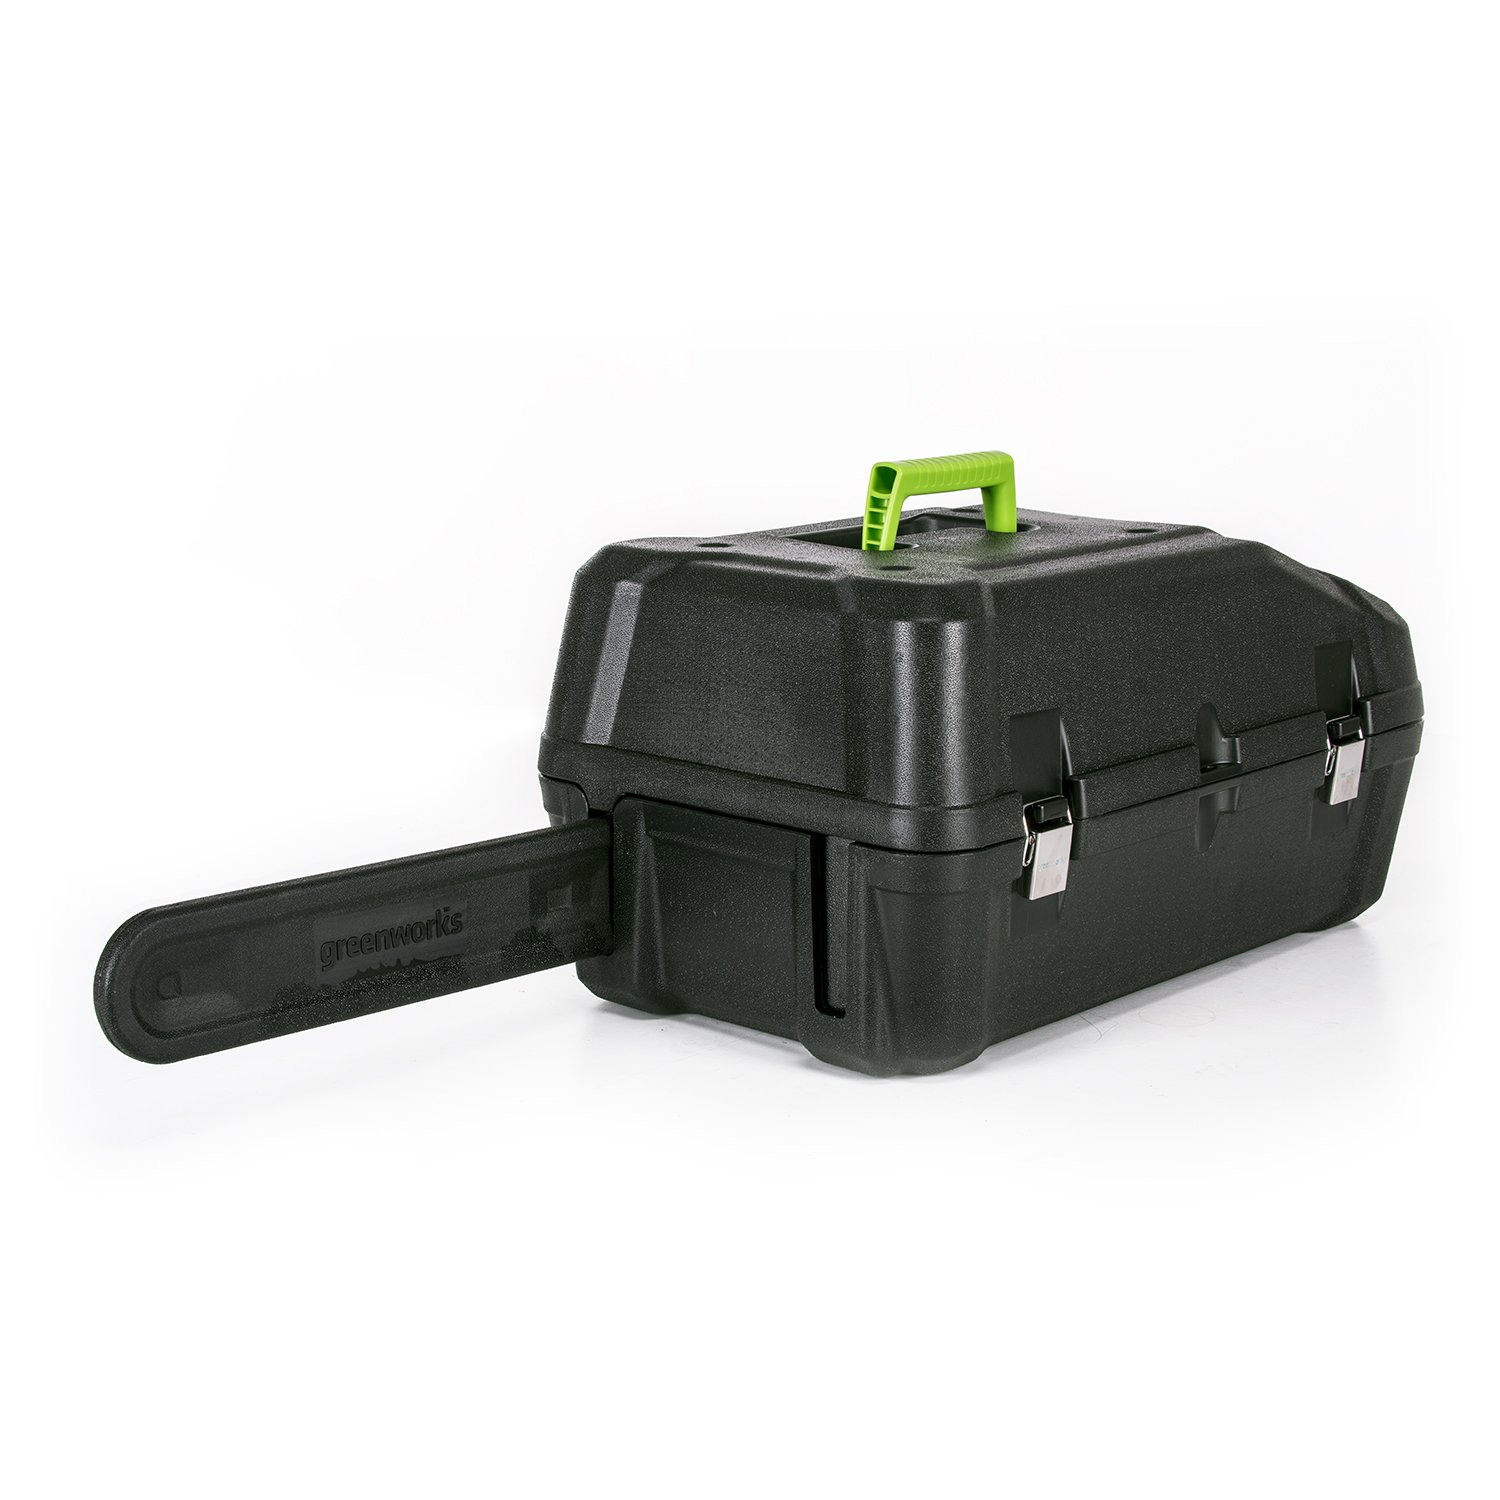 Greenworks PRO 80V Chainsaw Hard Case HC0A00 by Greenworks